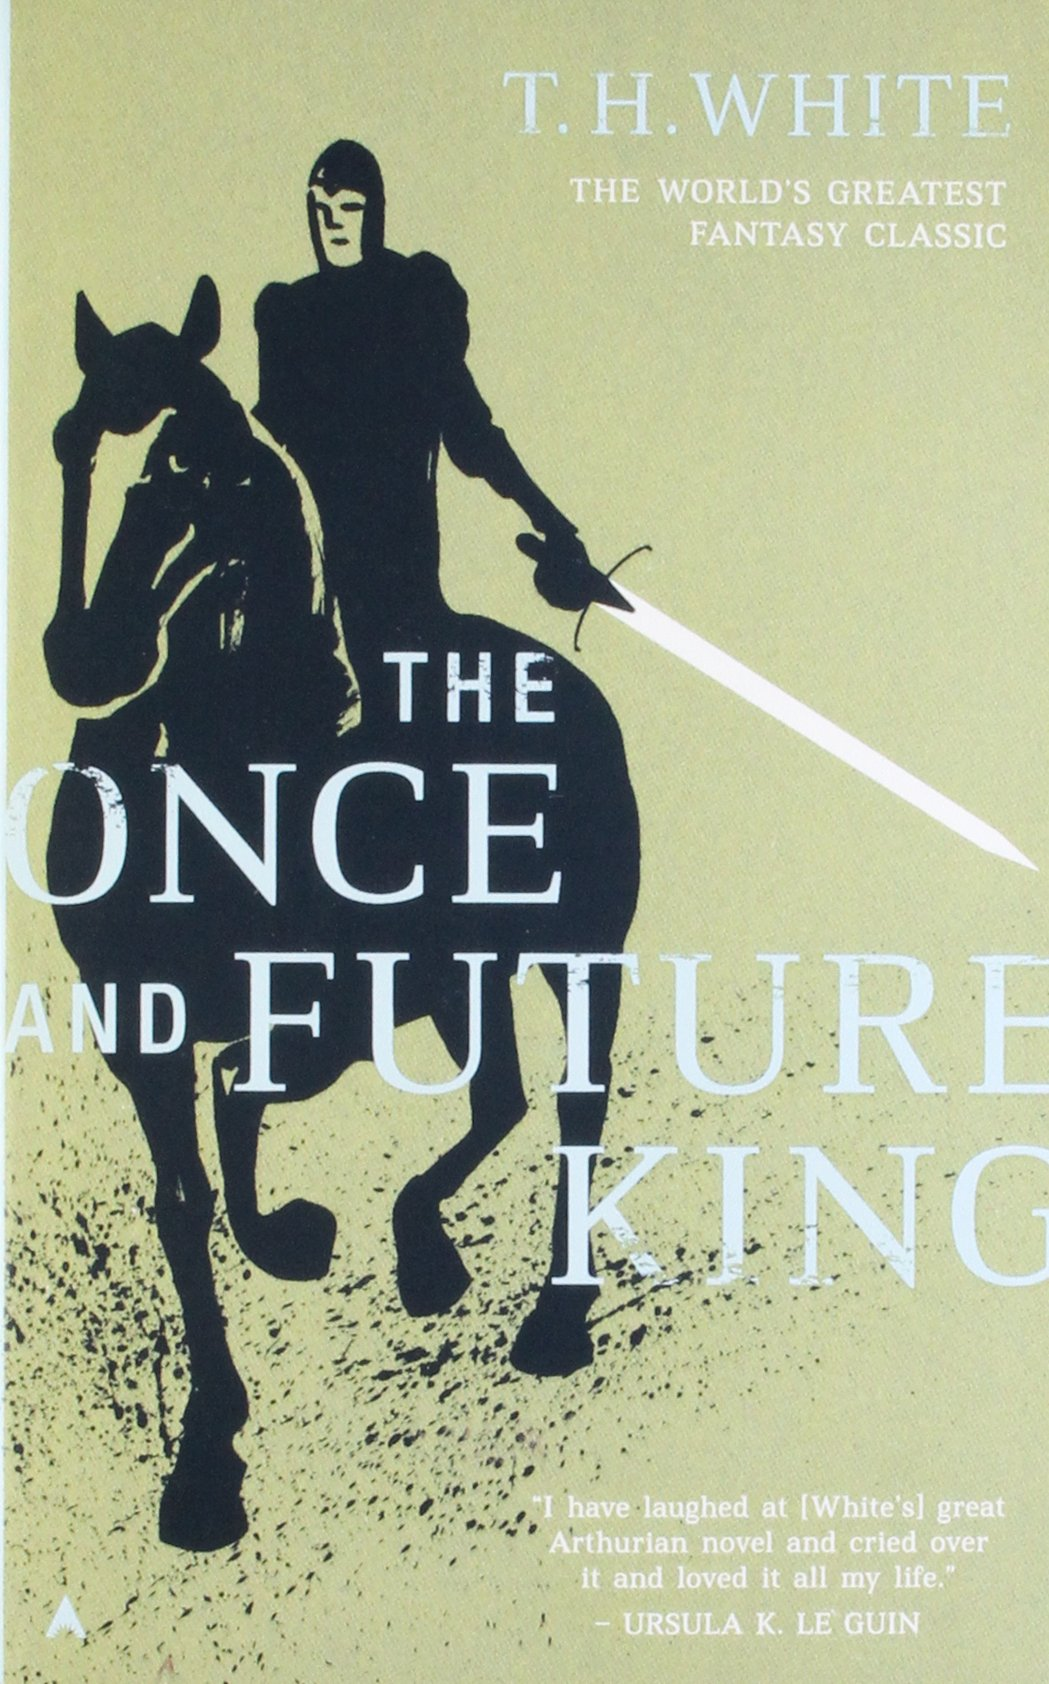 The Once and Future King, by TH White                               As famous as White's book is—among other things it was the basis for the musical Camelot—I think it's still underrated. As a pure prose stylist his contemporaries Lewis and Tolkien couldn't touch him. White seized hold of the great English epic, the story of King Arthur, beat the dust out of it and refurbished it as a great modern novel, full of joy, love, lush description, bittersweet humor, thrilling drama and deep tragedy. The first and best-known section, The Sword in the Stone, about Arthur's education by the wizard Merlin, may be the greatest story of an English childhood ever written.